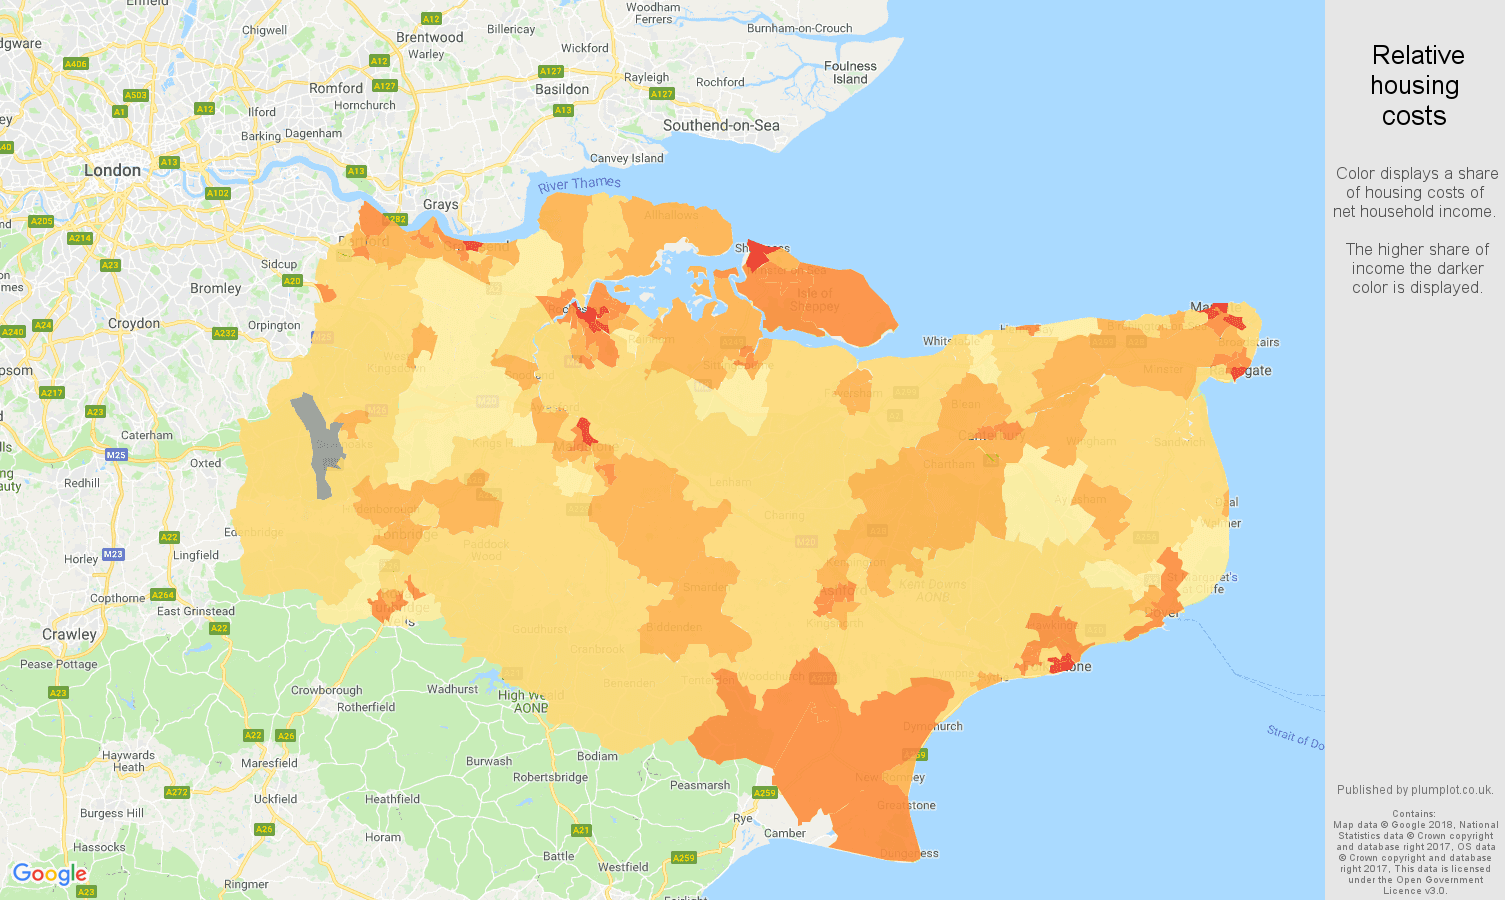 Kent relative housing costs map